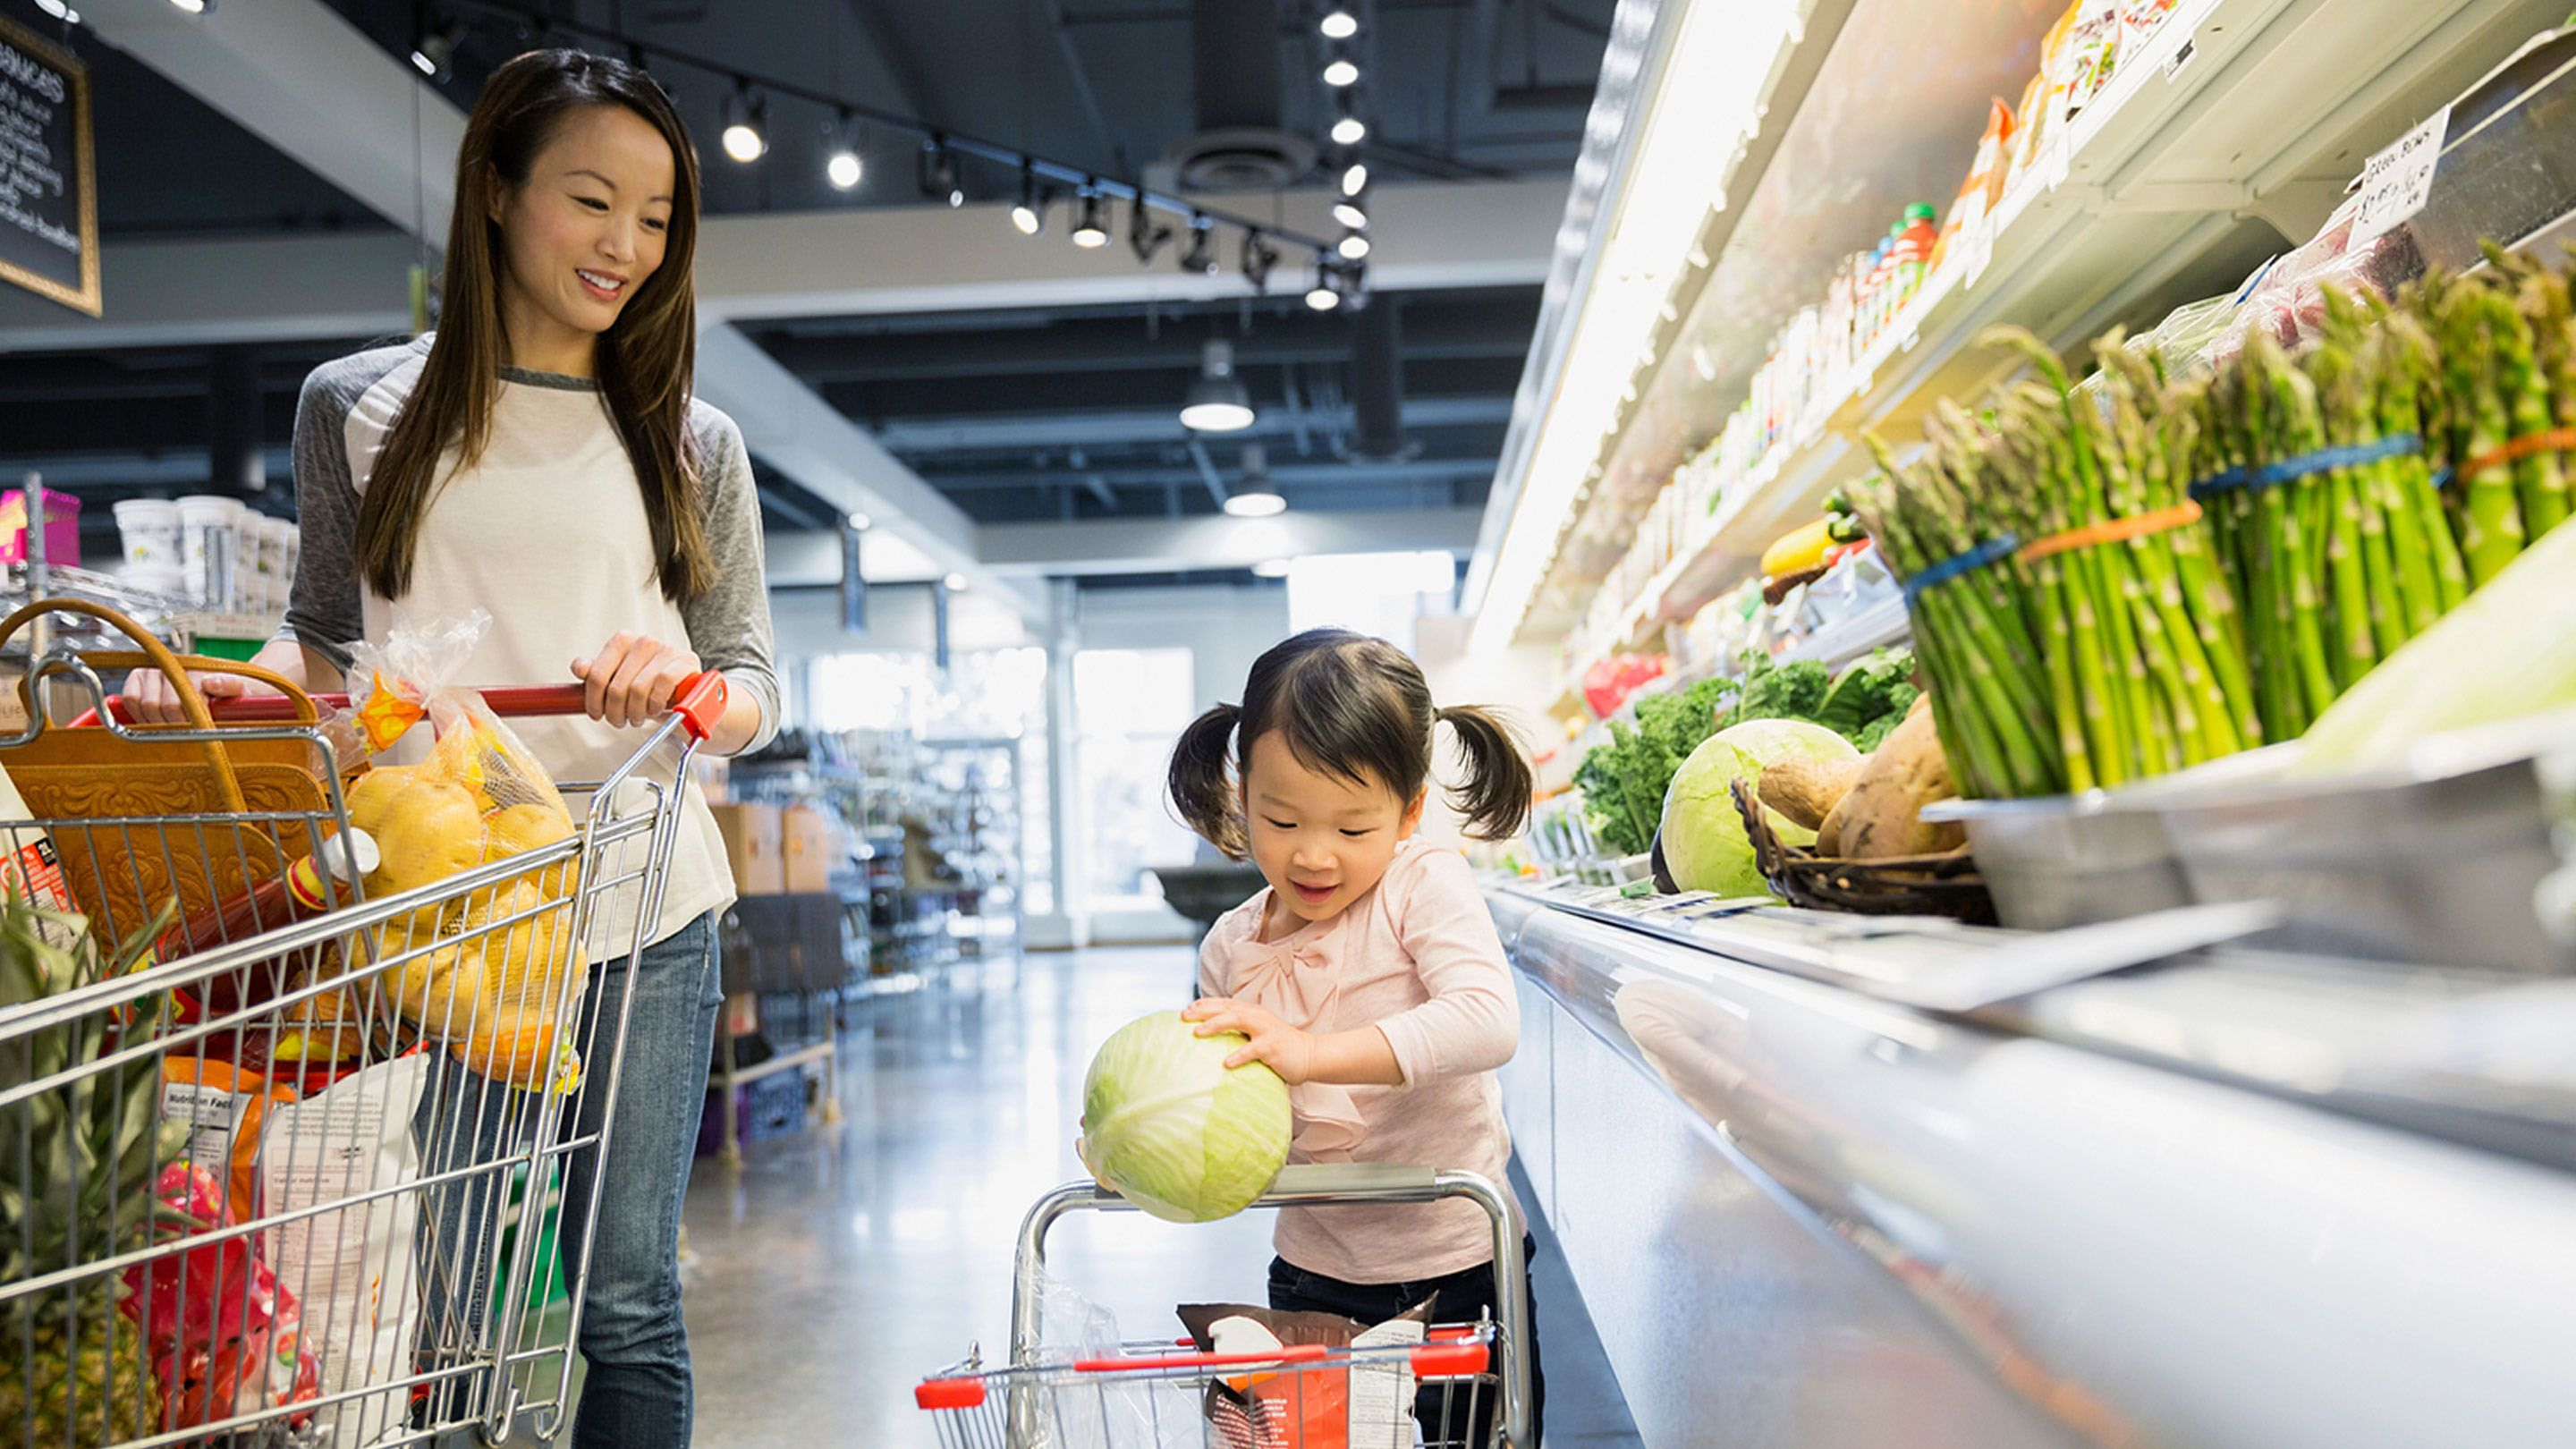 A mom and daughter are walking side by side in the produce aisle of a grocery store, pushing a regular and kid-sized shopping cart.